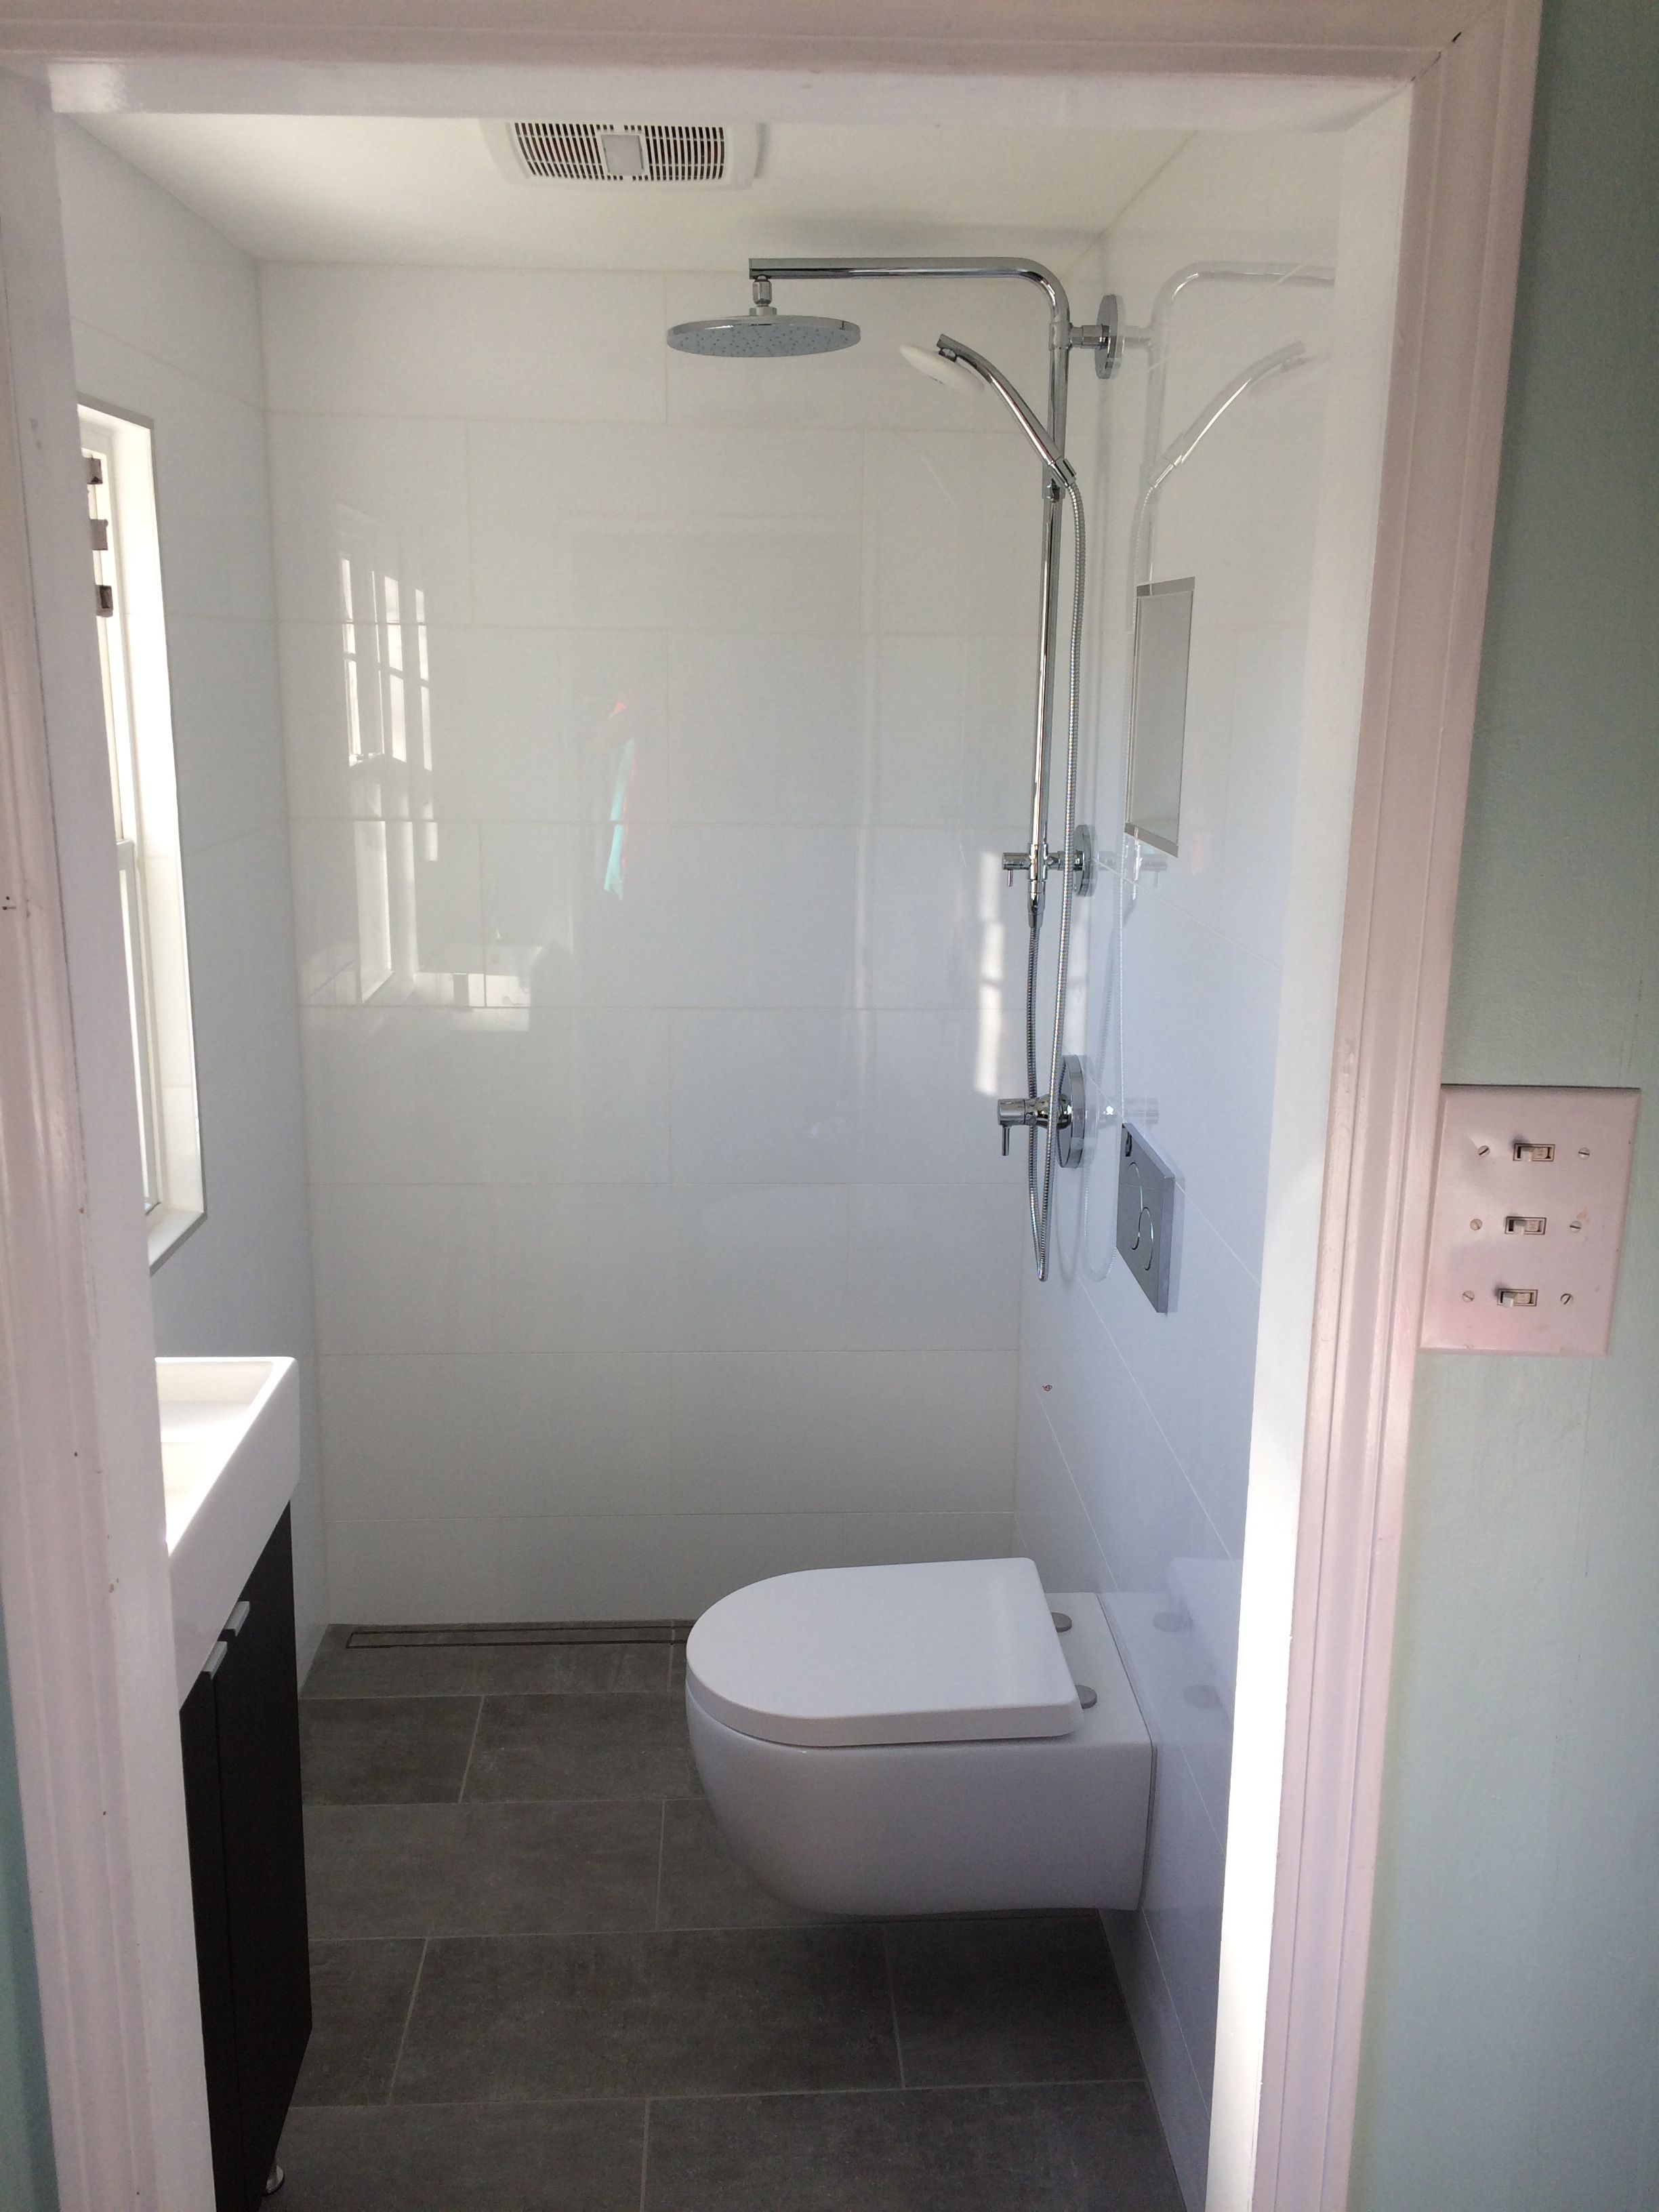 X Bathroom on 3 x 3 bathroom, 3 x 7 bathroom, 3 x 9 bathroom, 7 x 14 bathroom, 9 x 10 bathroom, 3 x 6 bathroom, 4 x 5 bathroom, 7 x 9 bathroom, 15 x 15 bathroom, 4 x 11 bathroom, 4 x 9 bathroom, 10 x 14 bathroom, 12 x 10 bathroom, 9 x 14 bathroom, 8 x 6 bathroom, 4 x 10 bathroom, 8 x 16 bathroom, 8 x 3 bathroom, 2 x 6 bathroom, 3 x 5 bathroom,